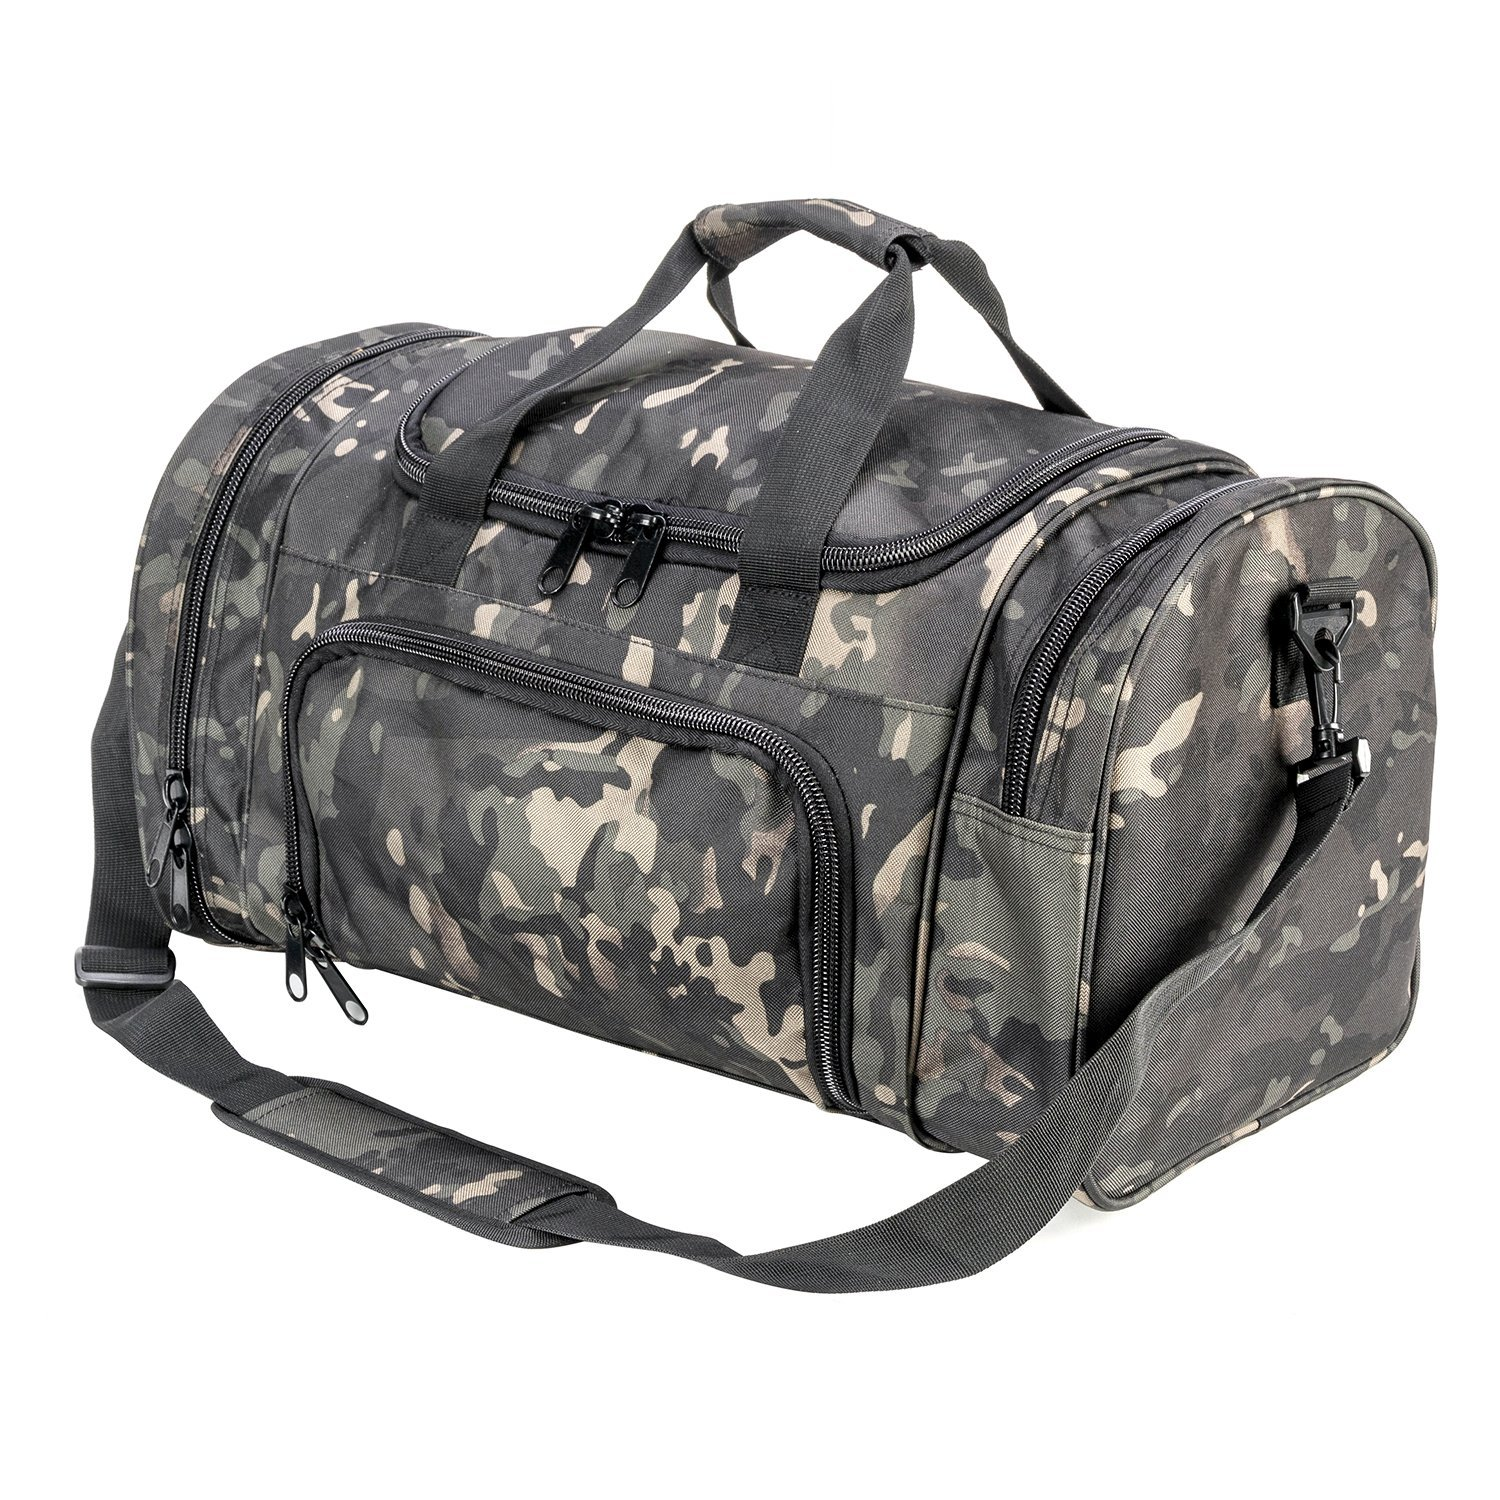 9eee9bab2fec21 Get Quotations · PANS Military Waterproof Duffel Bag Tactical Outdoor Gym  Bag Army Carry On Bag with Shoes Compartment